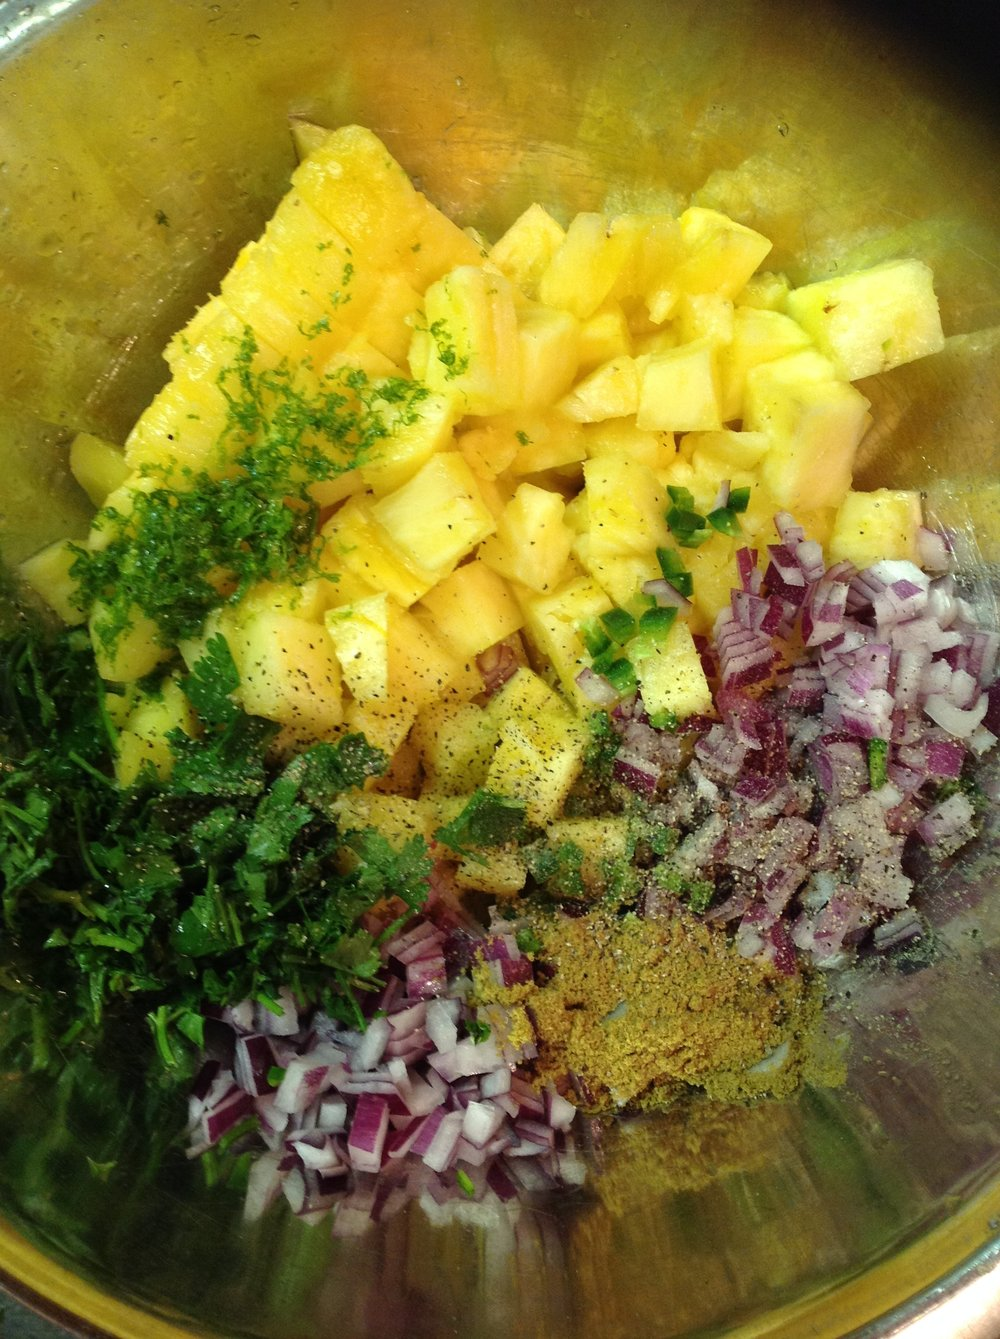 Pineapple Salsa Simple Healthy Ingredients - Pineapple, Red Onion, Jalapeno, Cumin, Lime, Cilantro